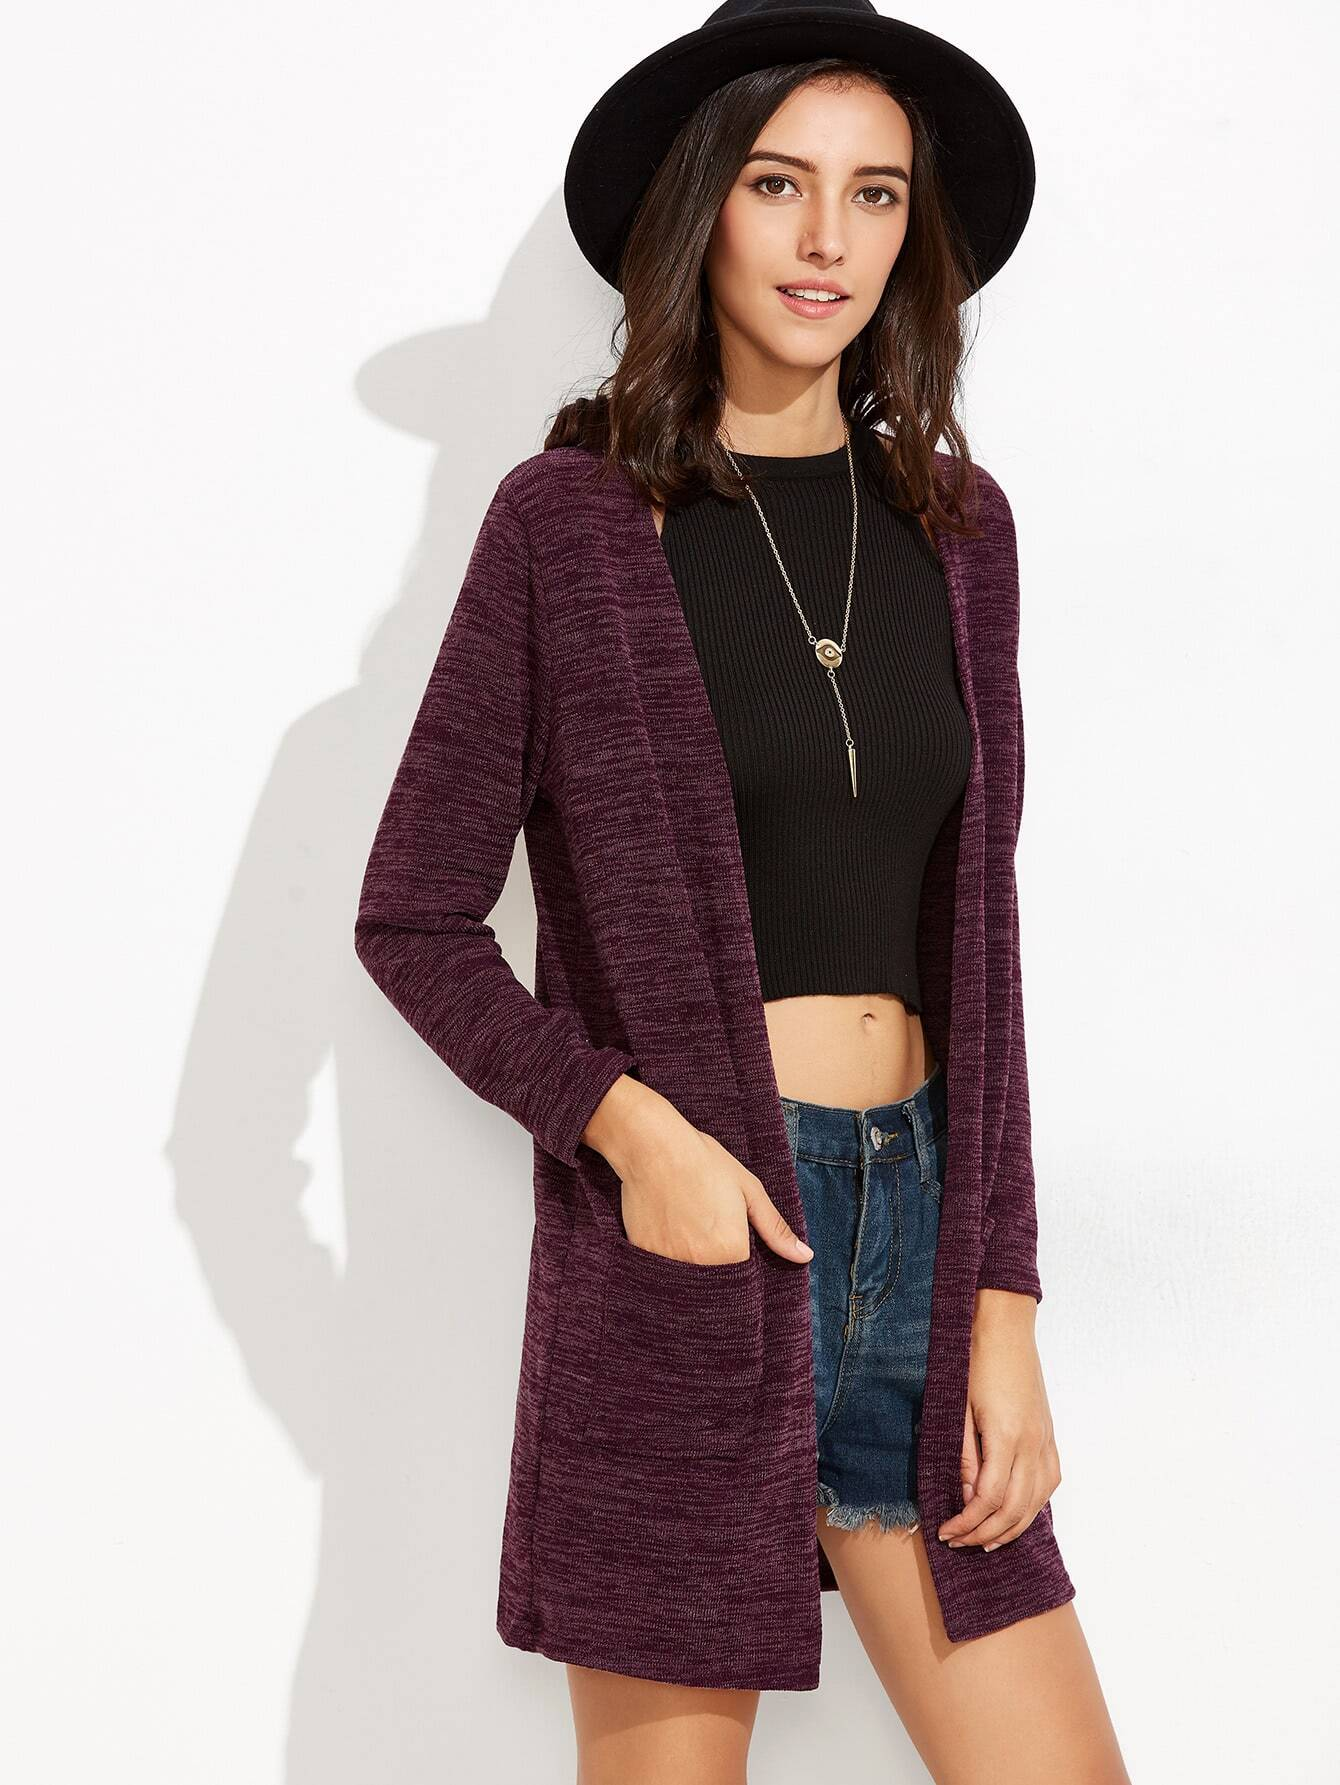 Purple Pockets Long CardiganPurple Pockets Long Cardigan<br><br>color: Purple<br>size: one-size